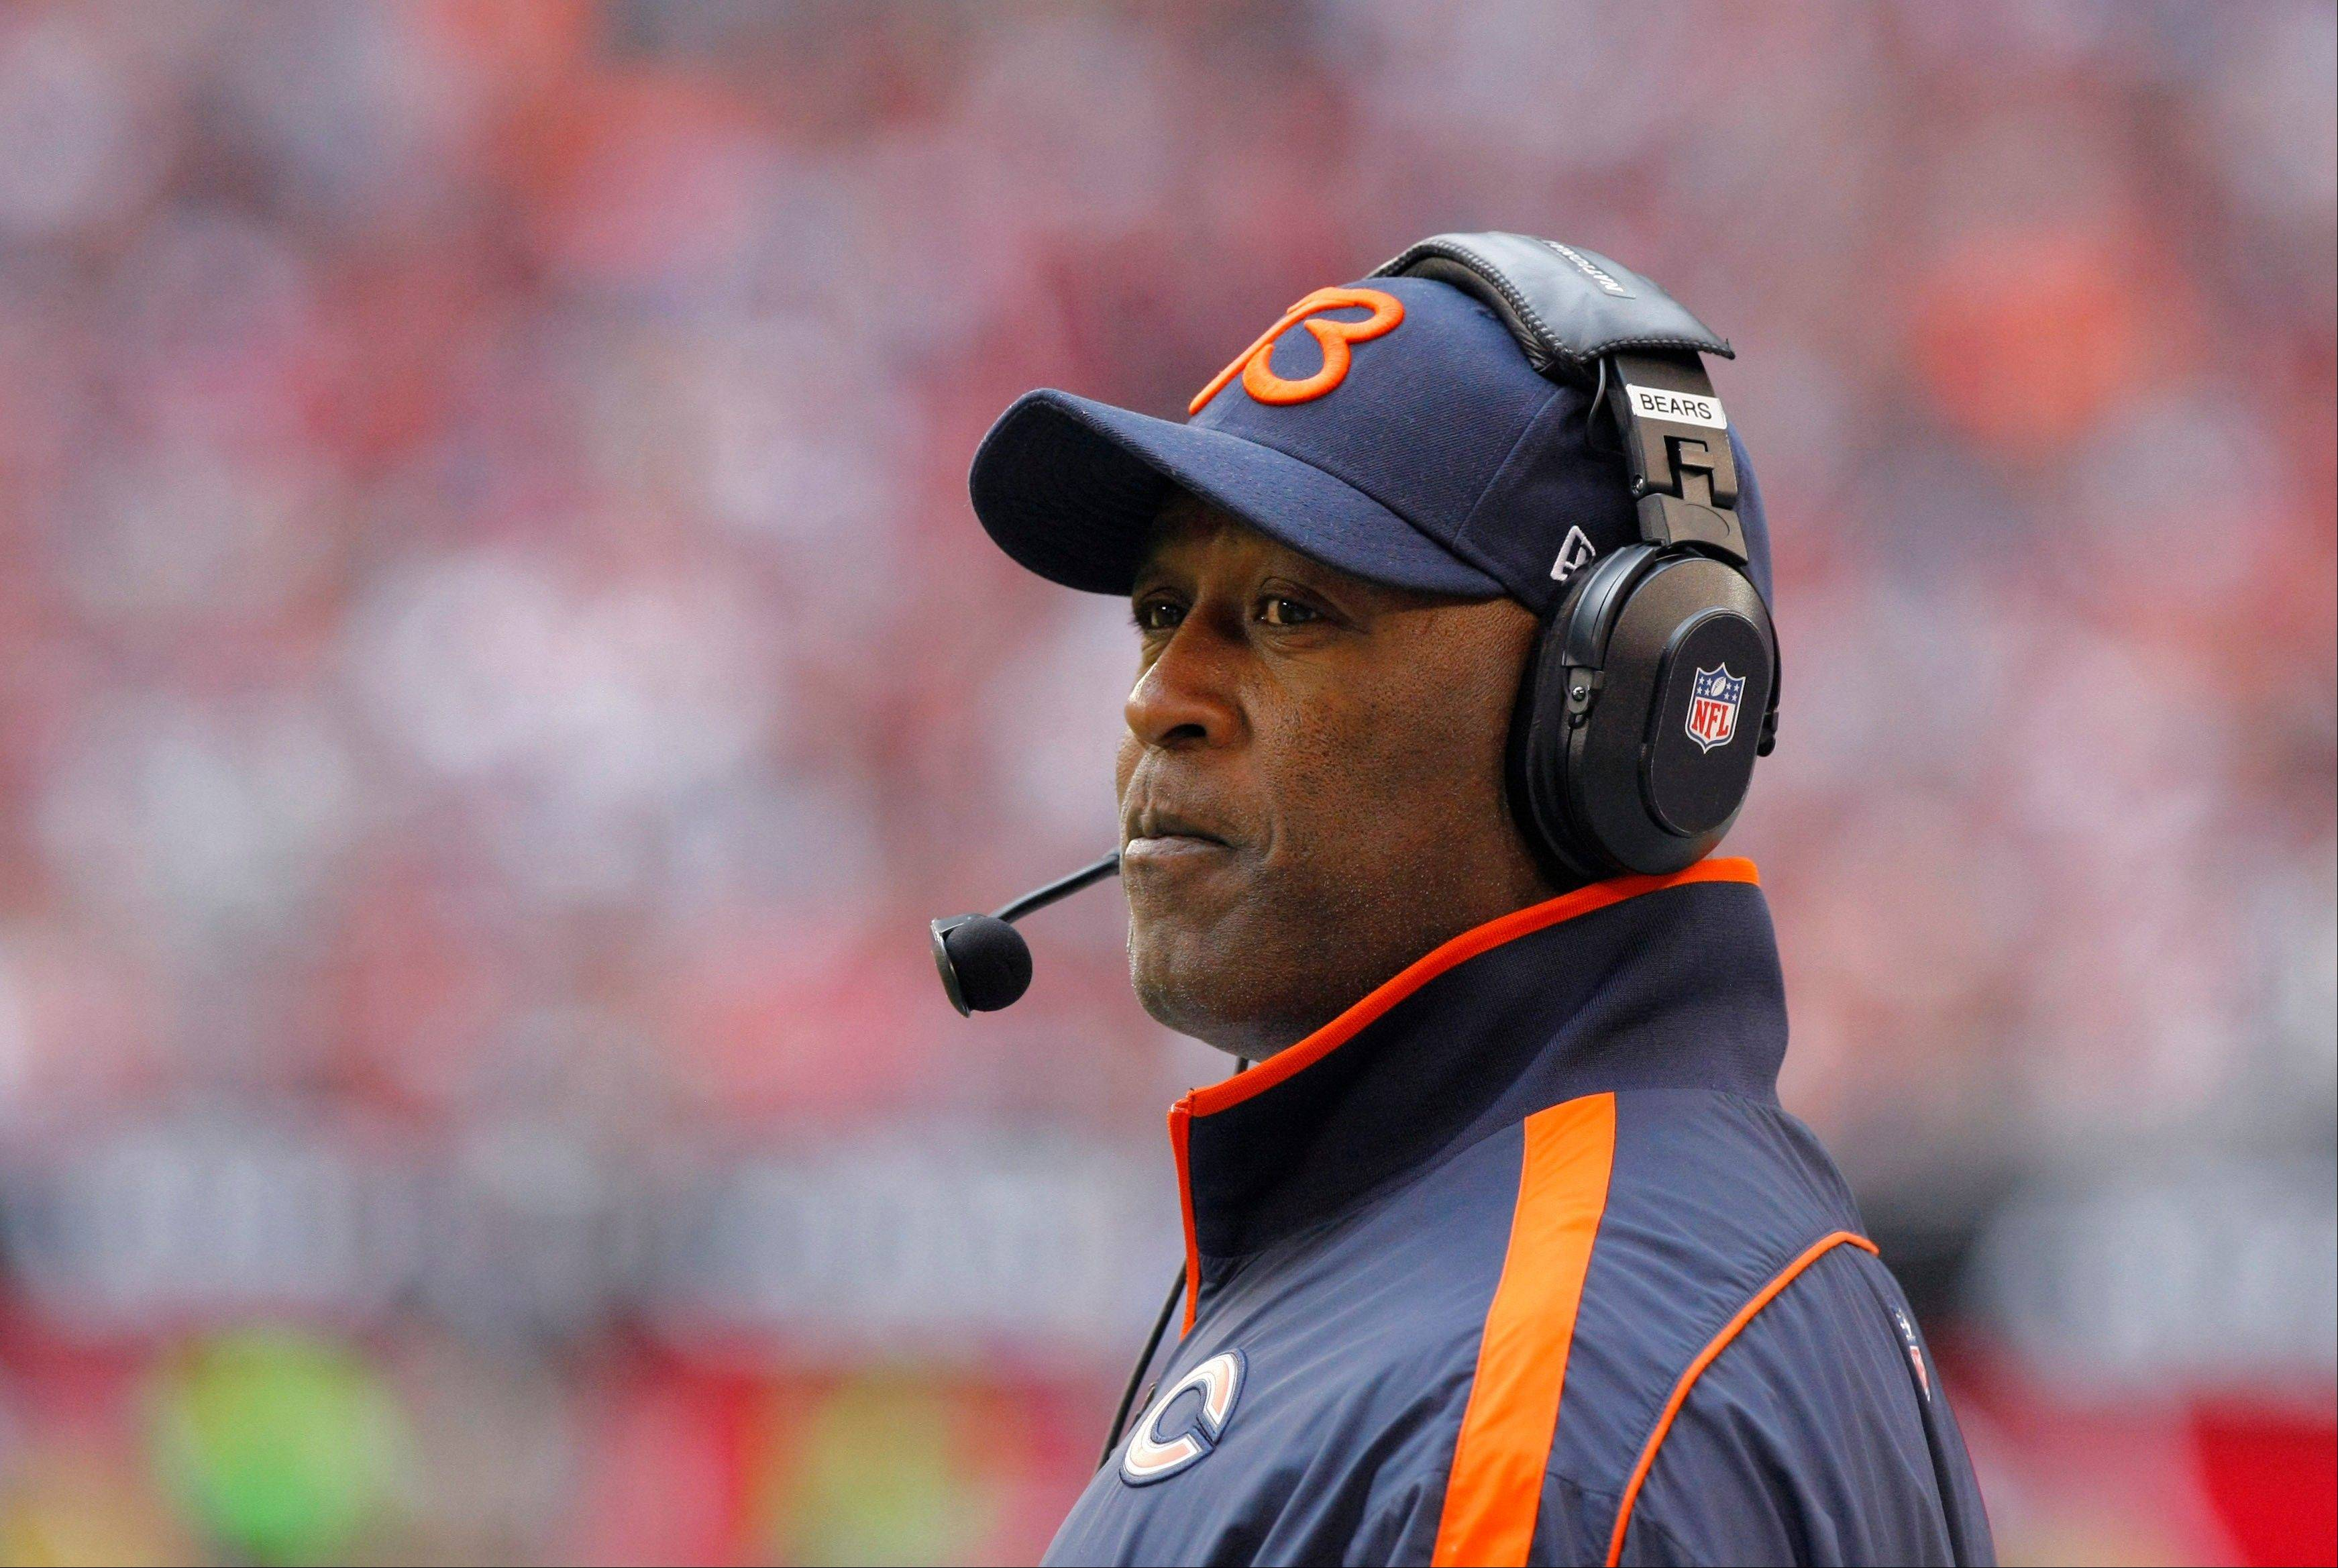 Bears coach Lovie Smith watches his team during Sunday's season-saving (so far) victory at Arizona.